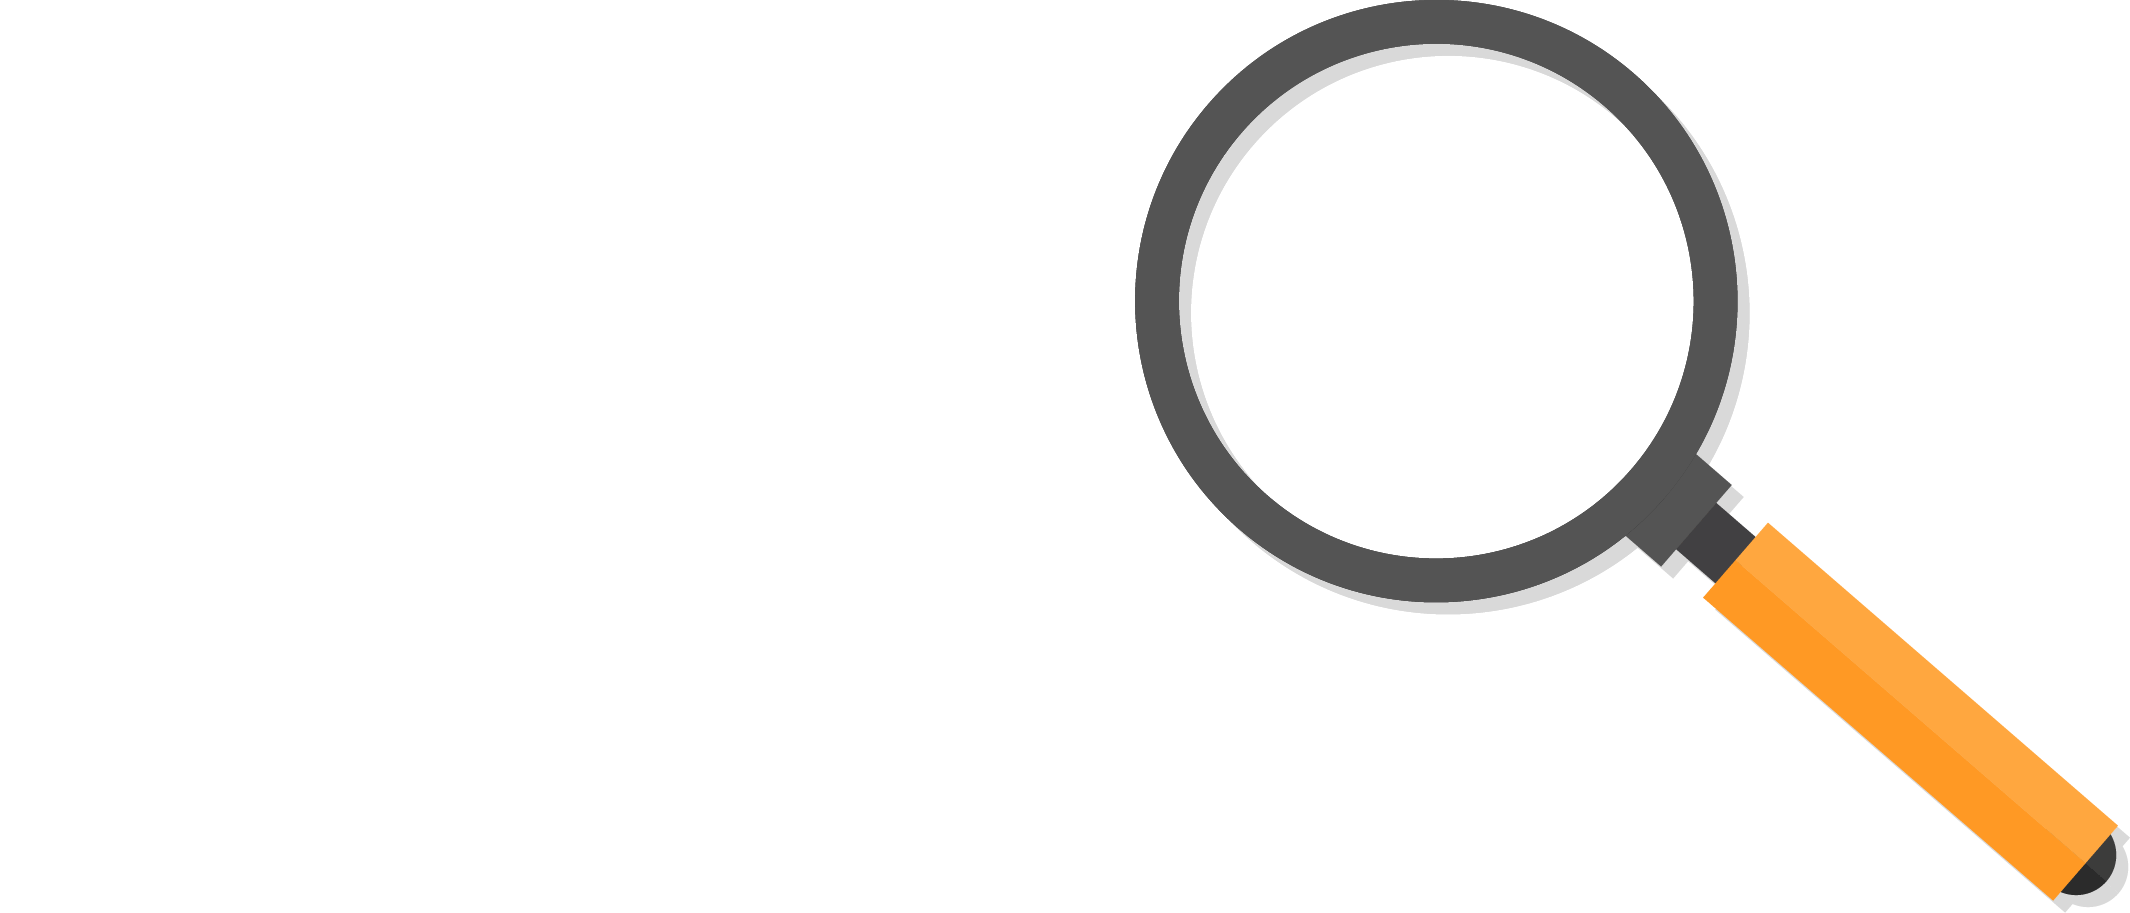 domo logo under magnifying glass